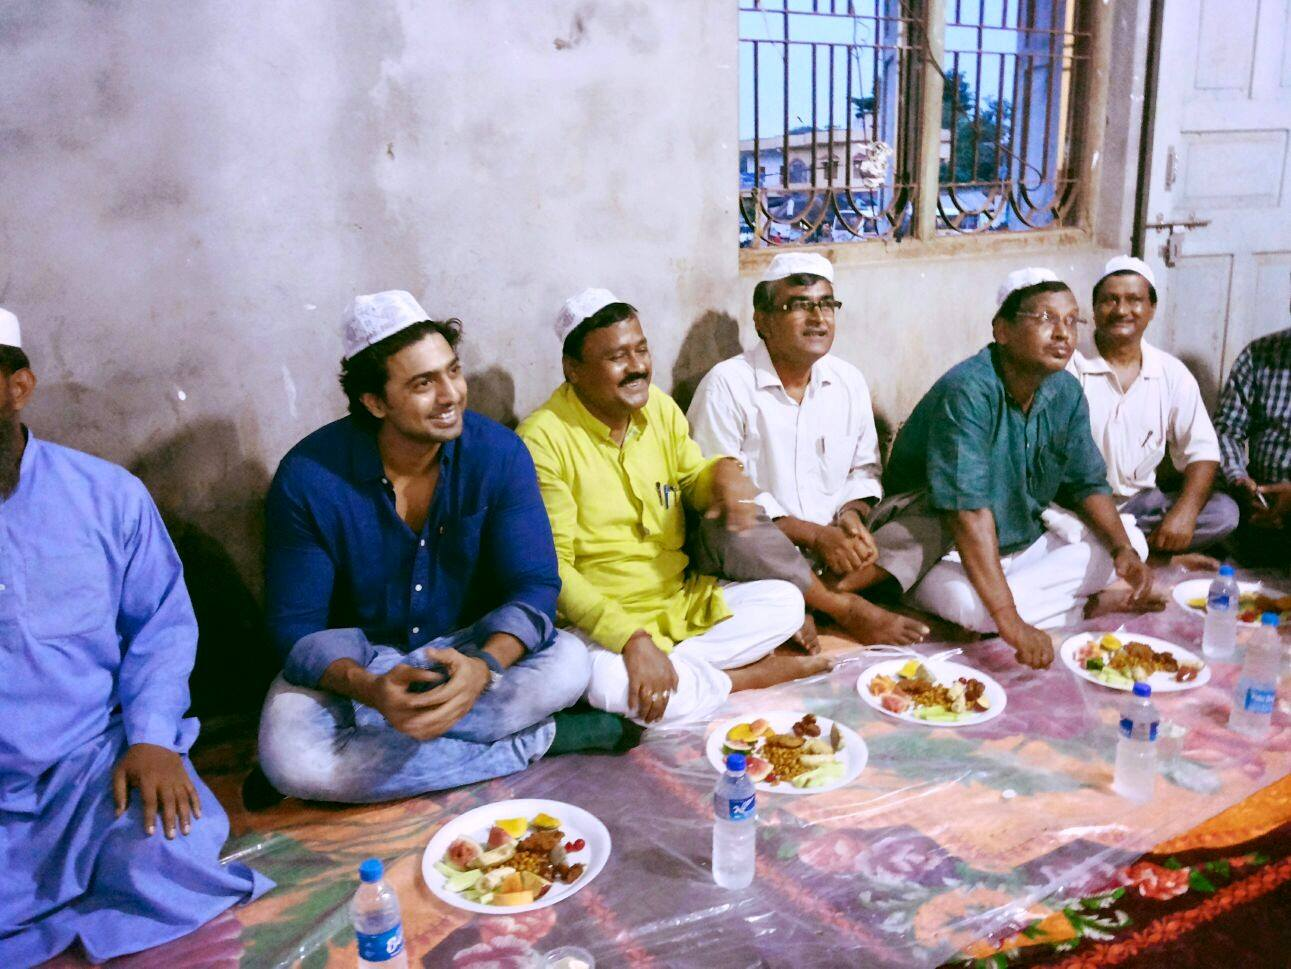 Rath dev shares pictures of iftar and rathyatra celebrations bengali movie news times of india